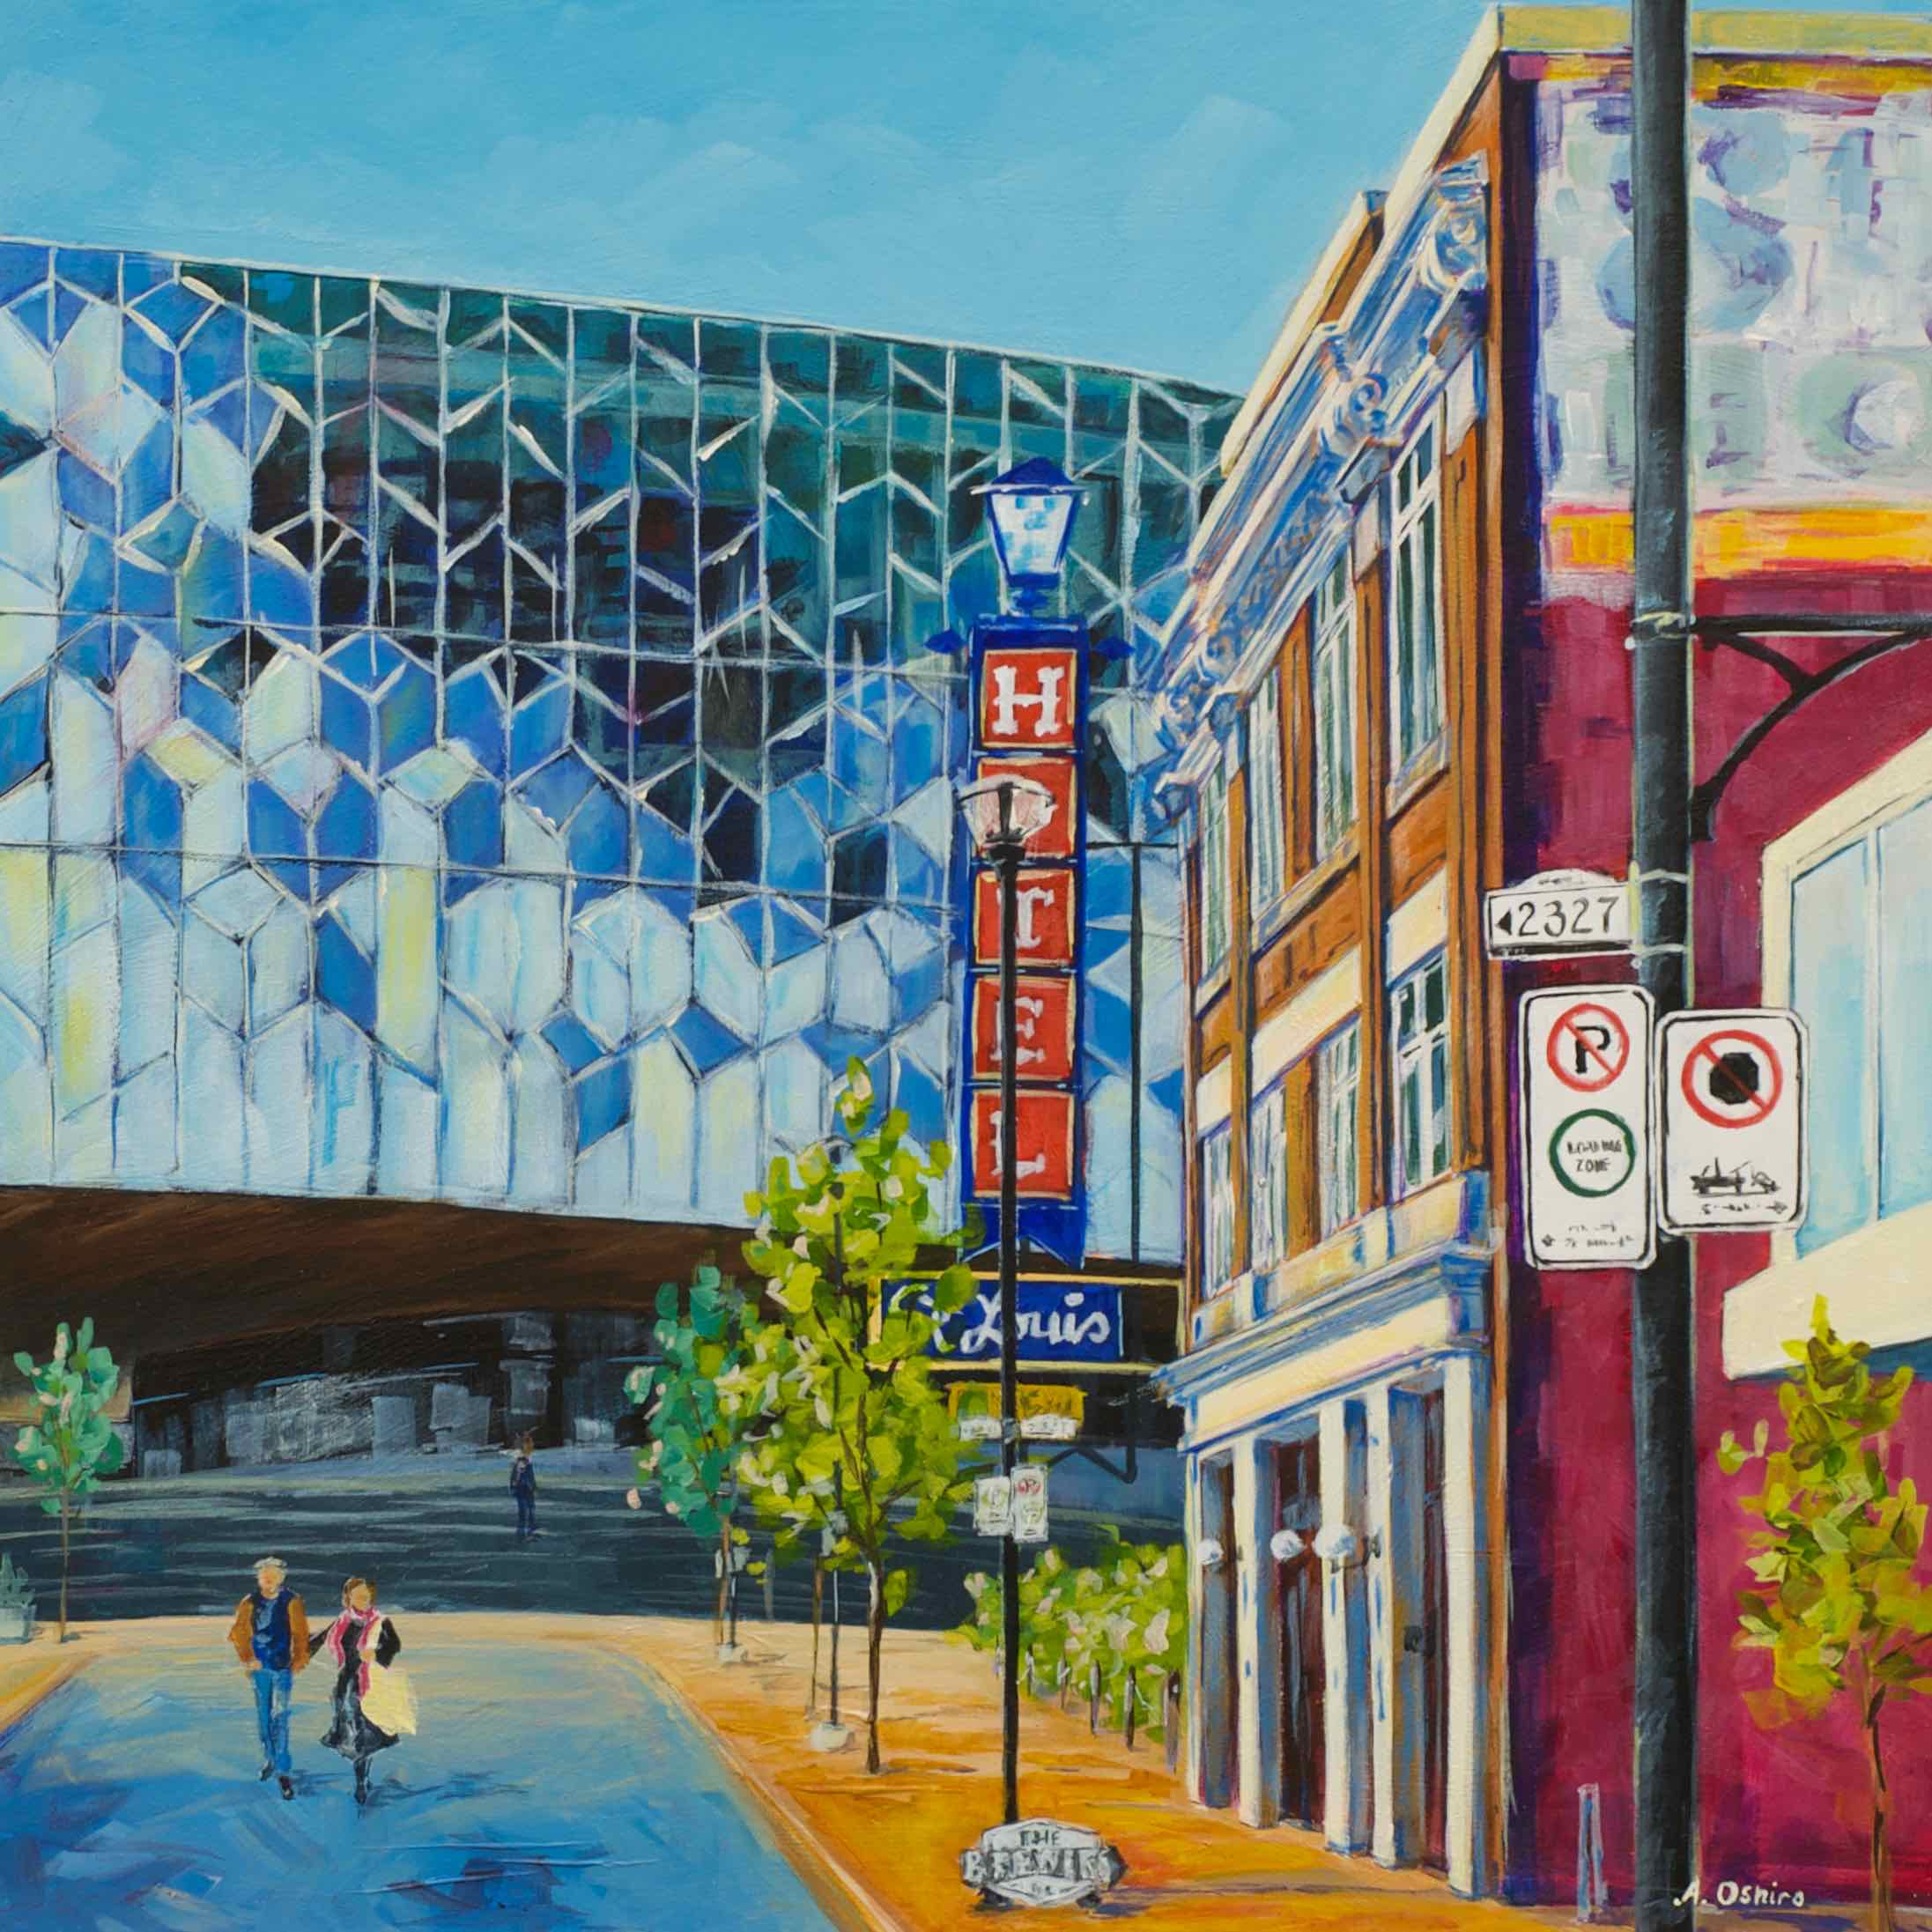 """- No. 3 – '8th Ave. and 4th St. SE'20x20"""" Acrylic on Cradled Birch PanelThis piece features both the old and new in downtown East Village. The New Central Library (NCL) first opened its doors to the public on November 1, 2018 and was designed by two architectural firms: Snøhetta and DIALOG at a cost of $245,000,000. At the time of this painting, the Calgary Public Library was holding a campaign for people to """"purchase"""" windows to add personal inscriptions ranging from $100 to $5,000. East of the library is the St. Louis Hotel (1914) which was known for its imaginary """"Indoor Horse Races"""". The hotel was purchased and restored by the Calgary Municipal Land Corporation (CMLC) and currently serves as the CMLC's head office."""